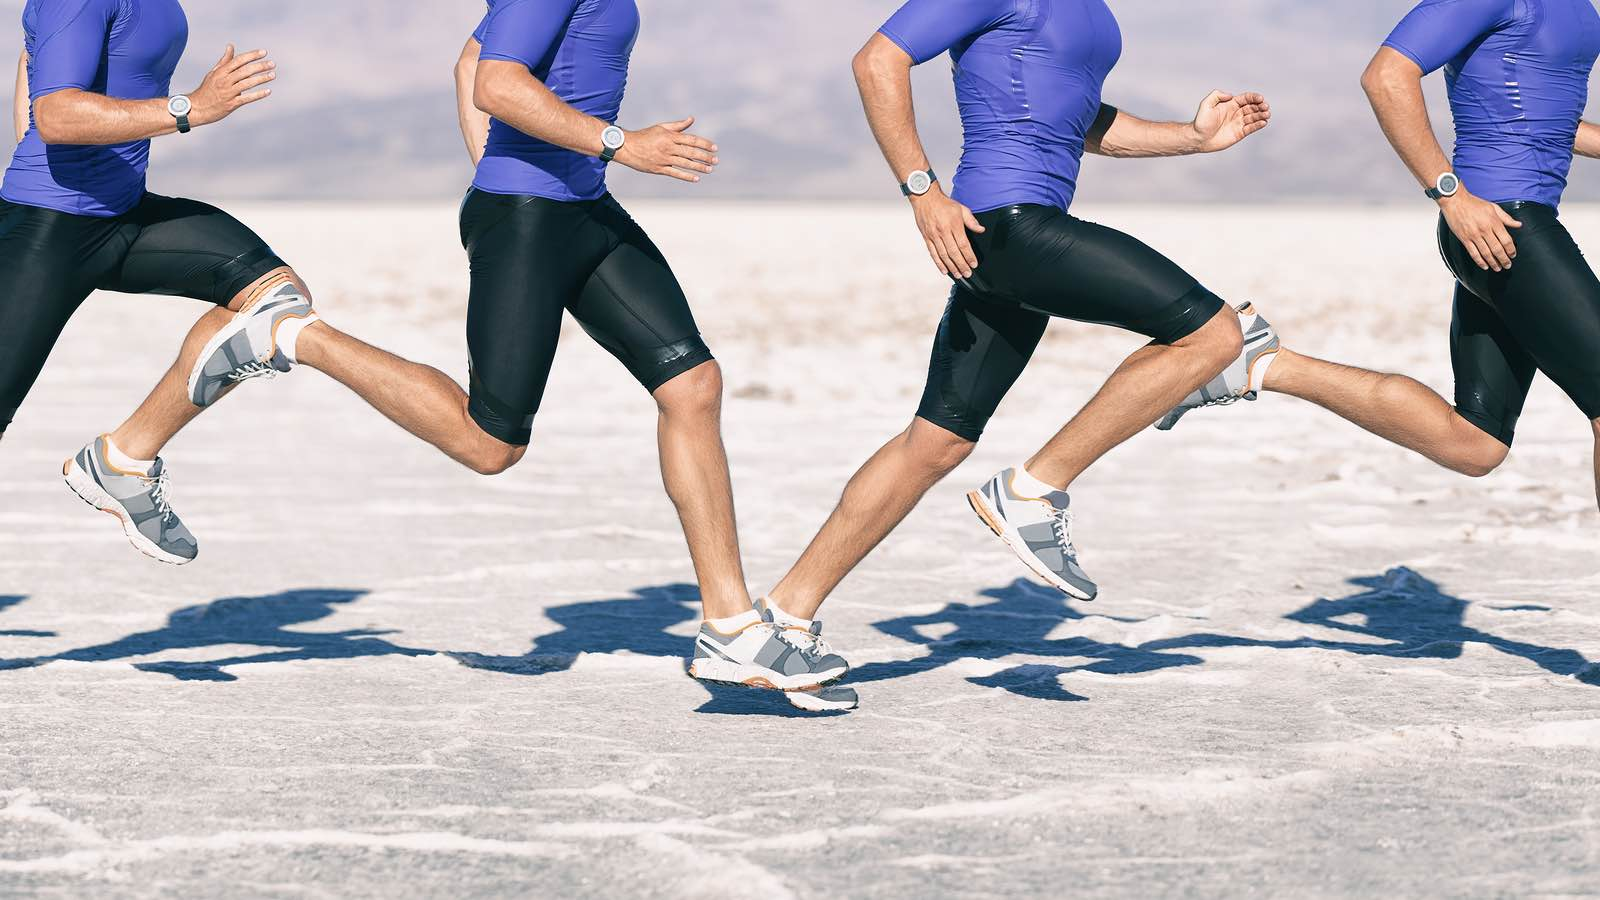 Common Biomechanical Errors in Runners - Recognize the most common running patterns seen in athletes that can lead to injury